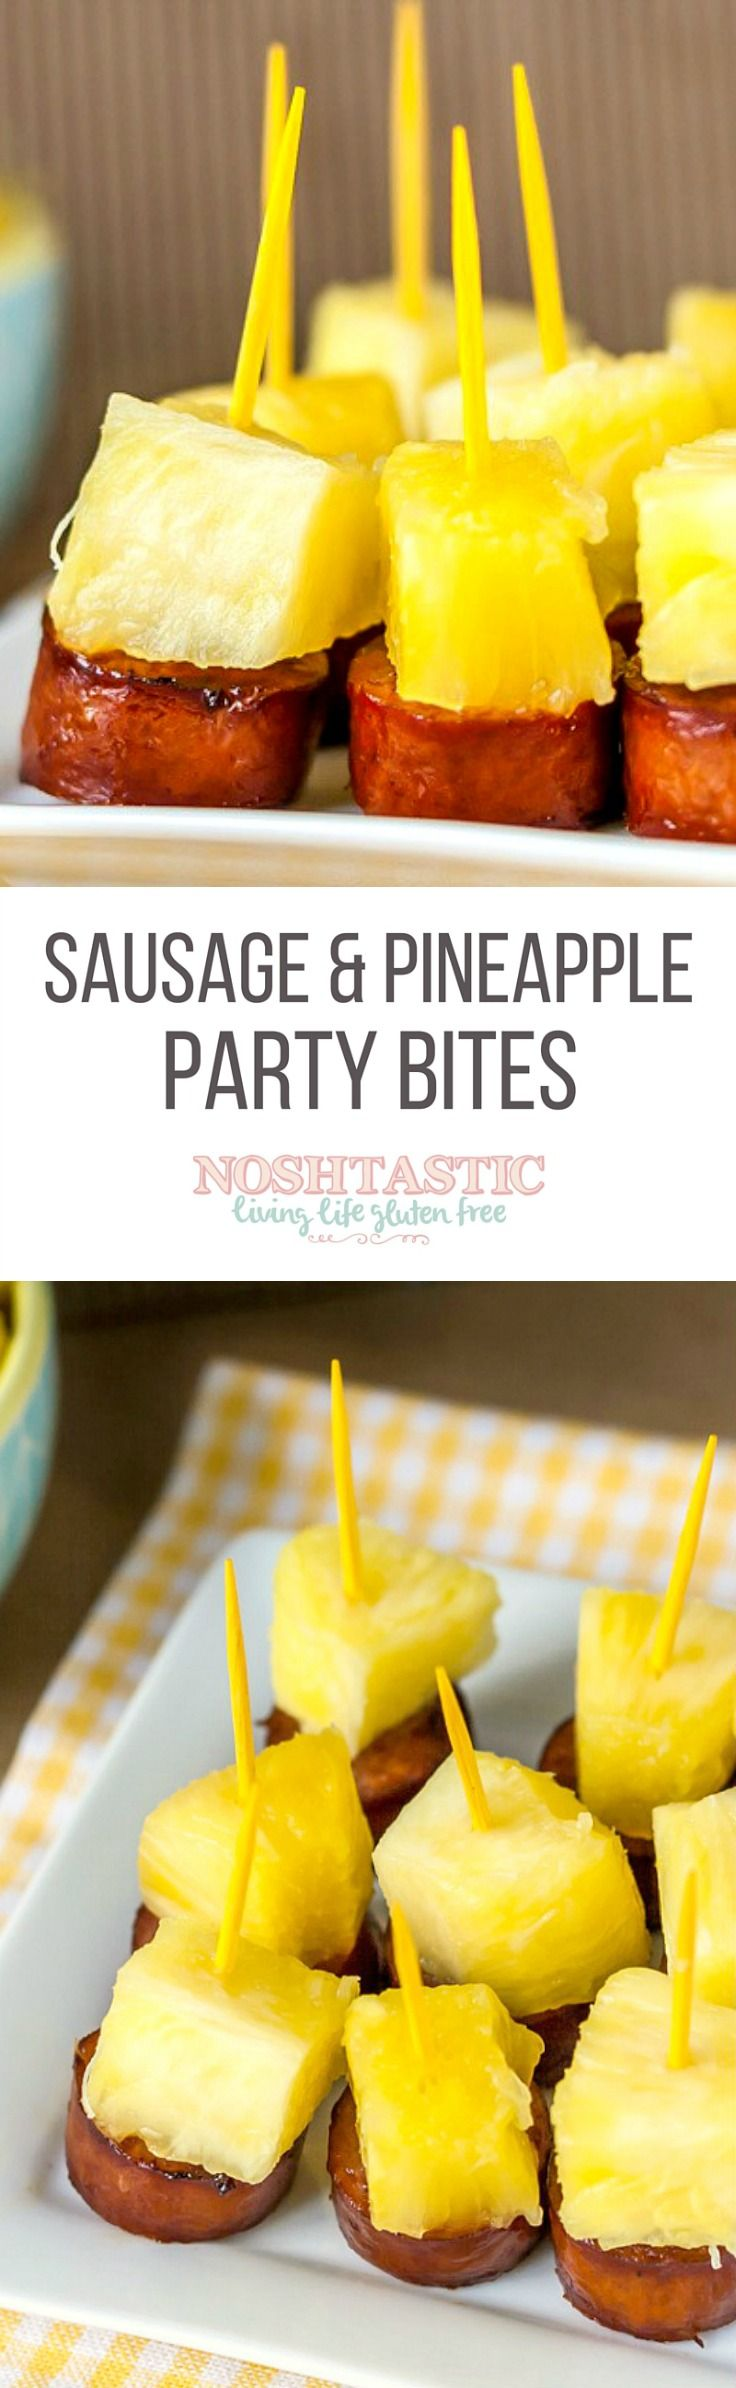 These fun little Sausage and Pineapple Party Bites are easy to make in a hurry and would make a great appetizer for your next party! #fingerfoodpartyappetizers